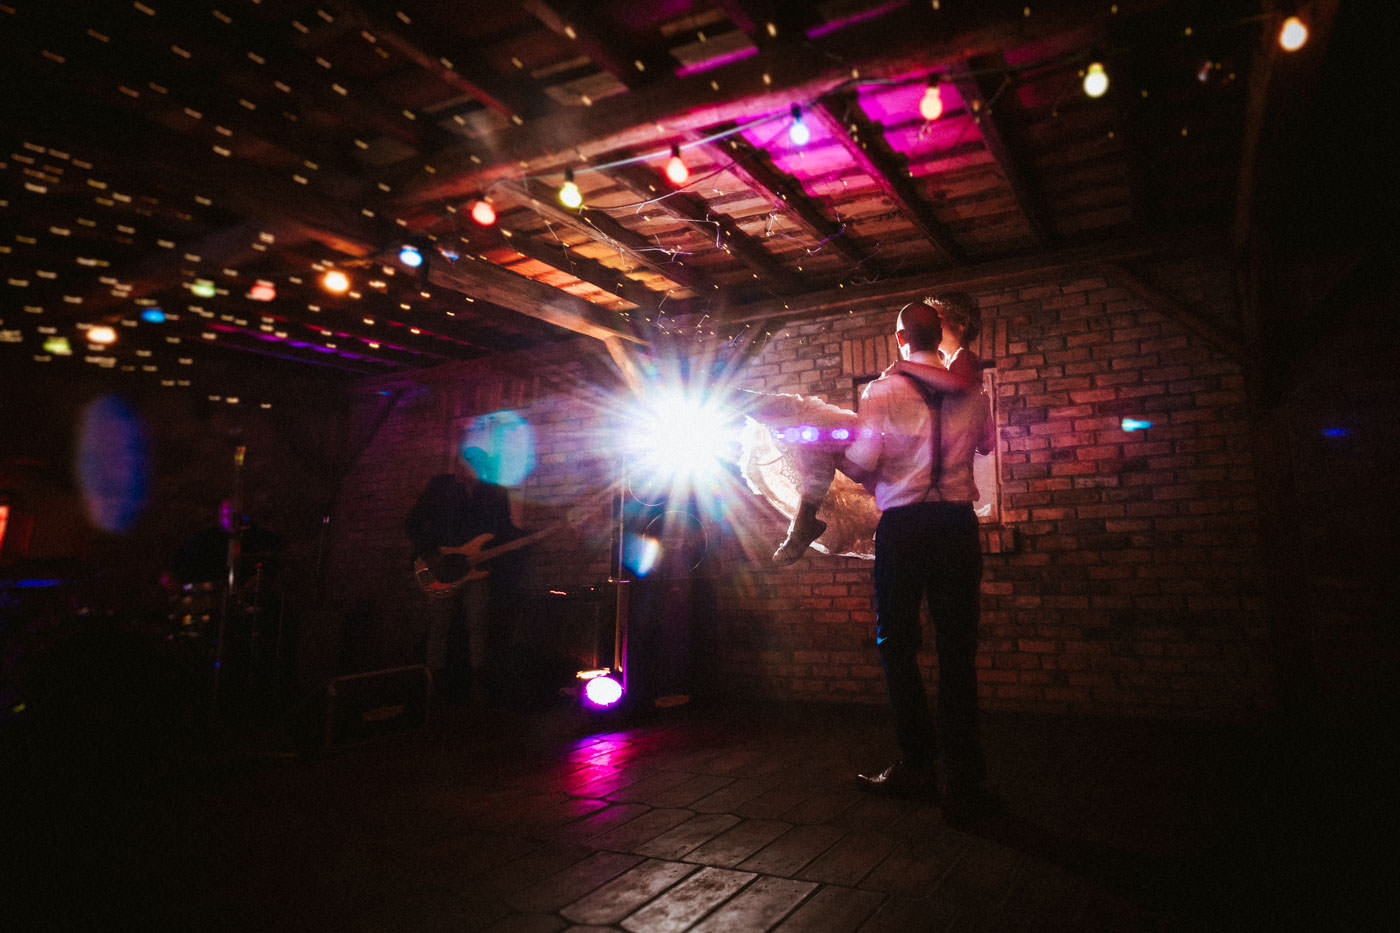 First dance to live music in the old barn of Weingut Weidenmühle